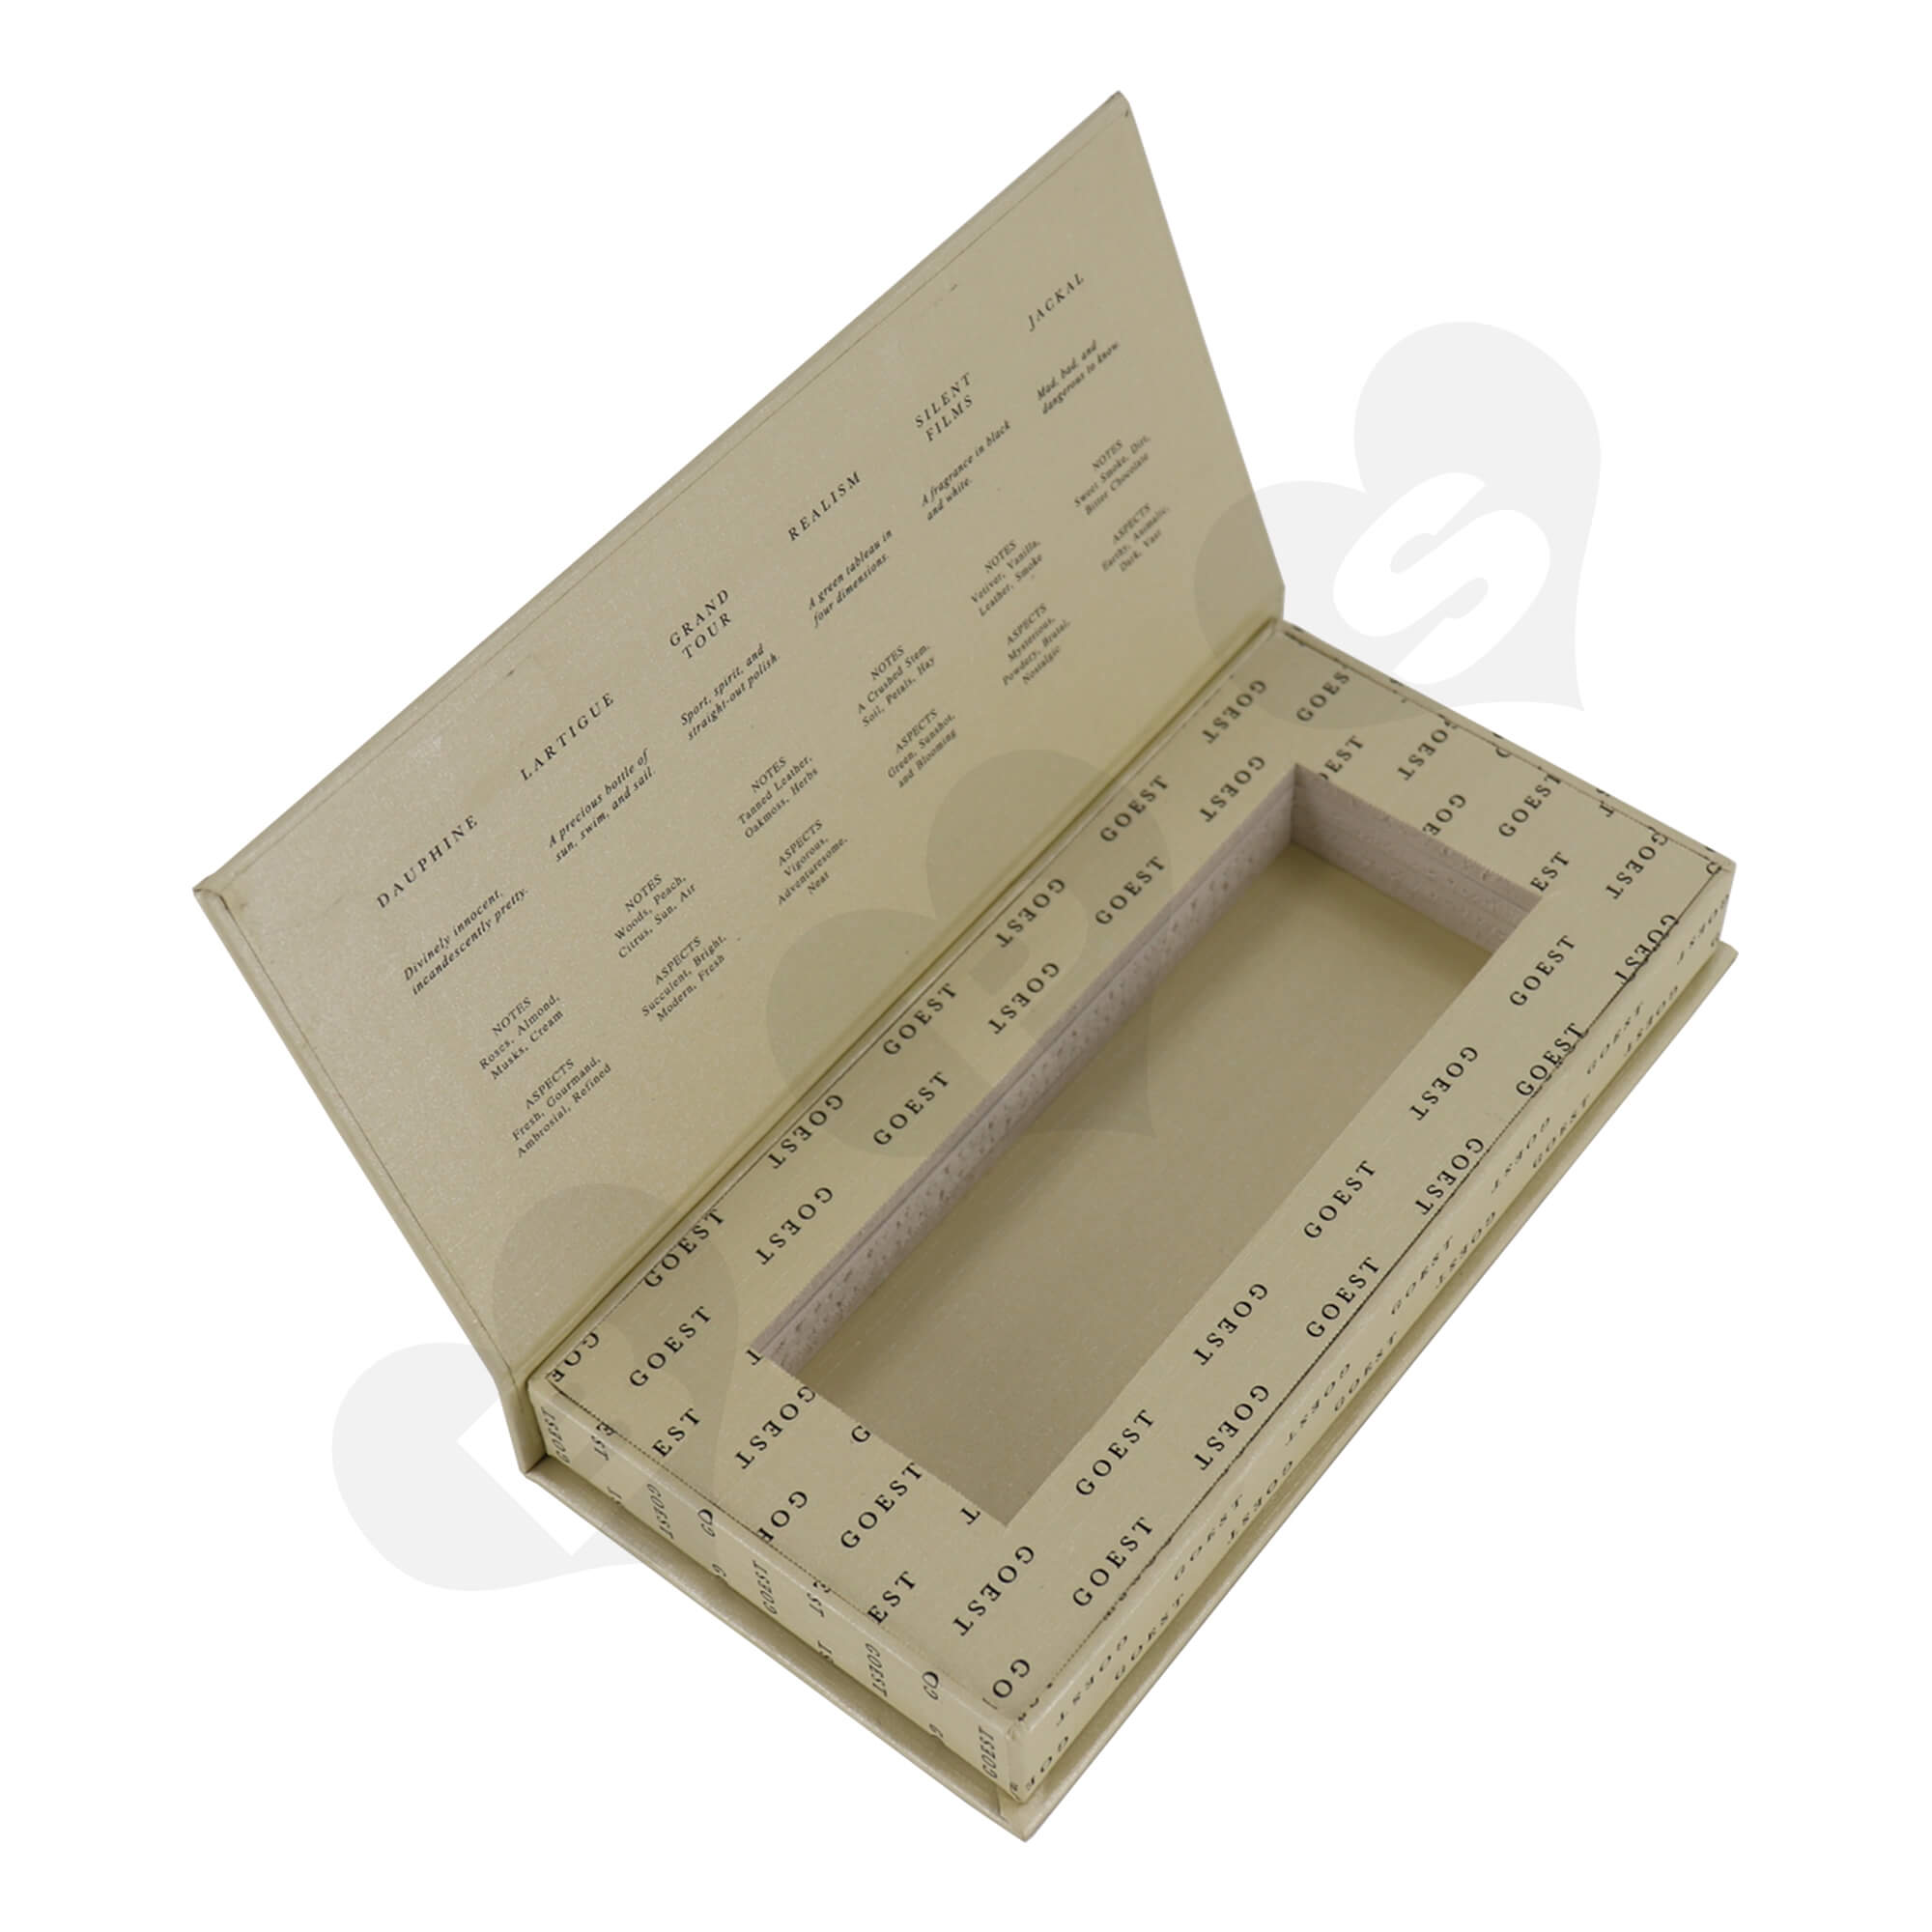 Custom Hinged Lid Book Shape Box For Packing Perfume Trial Kit Side View One